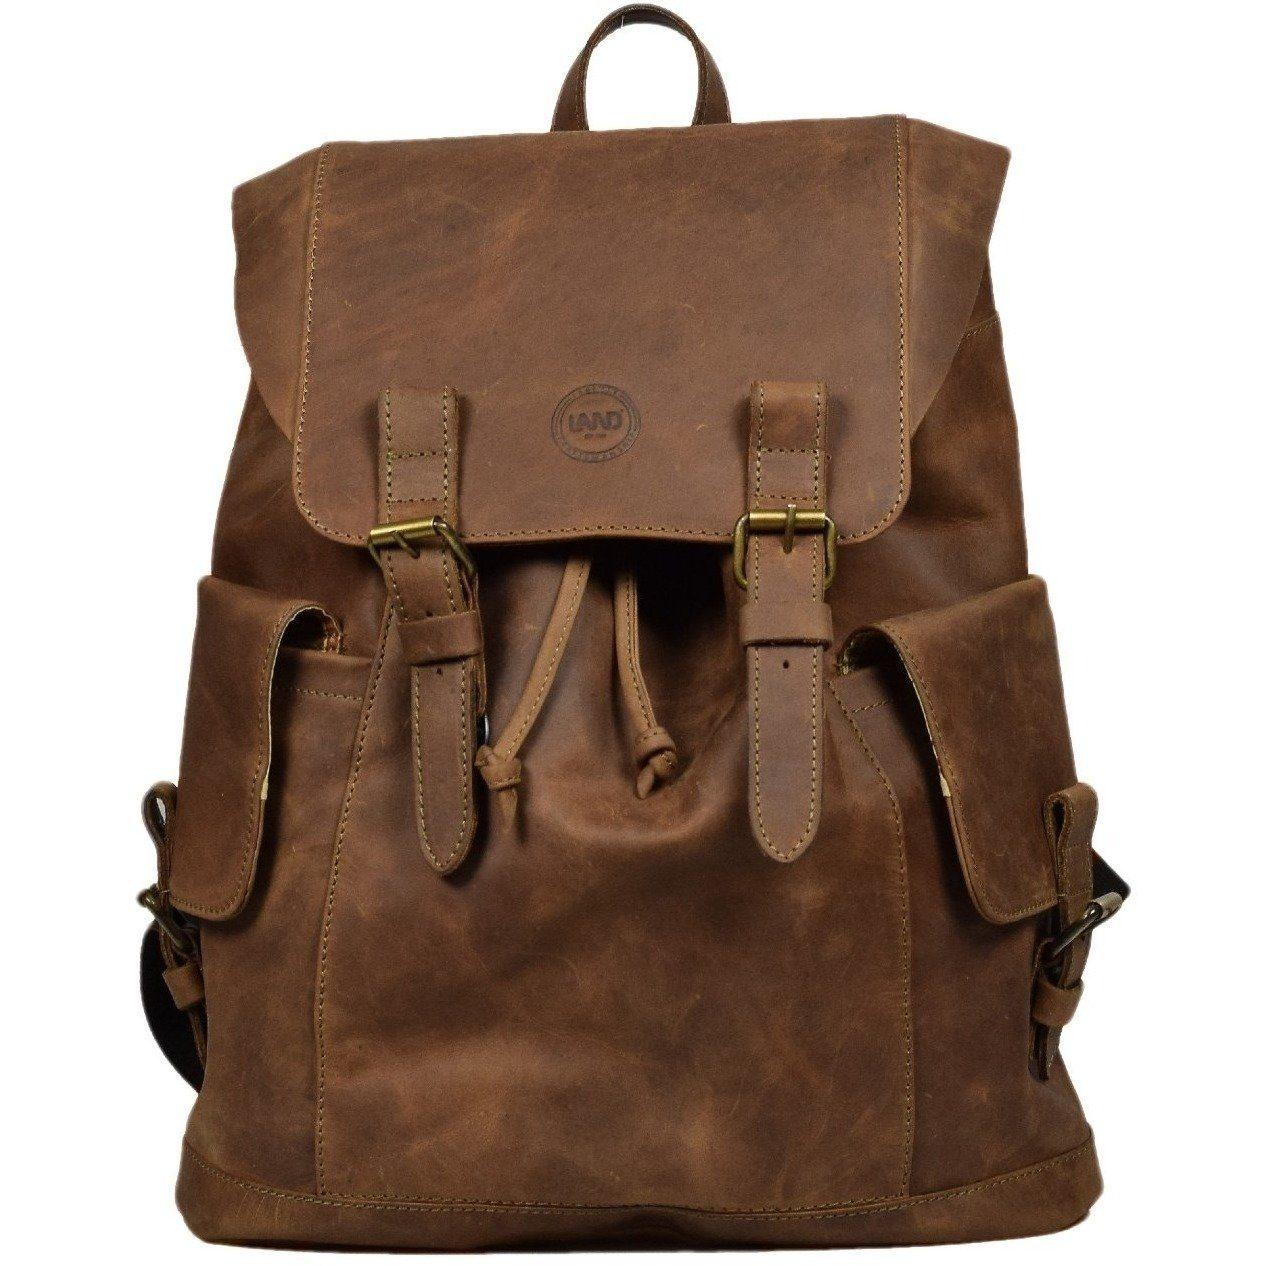 Terra Charlotte Backpack